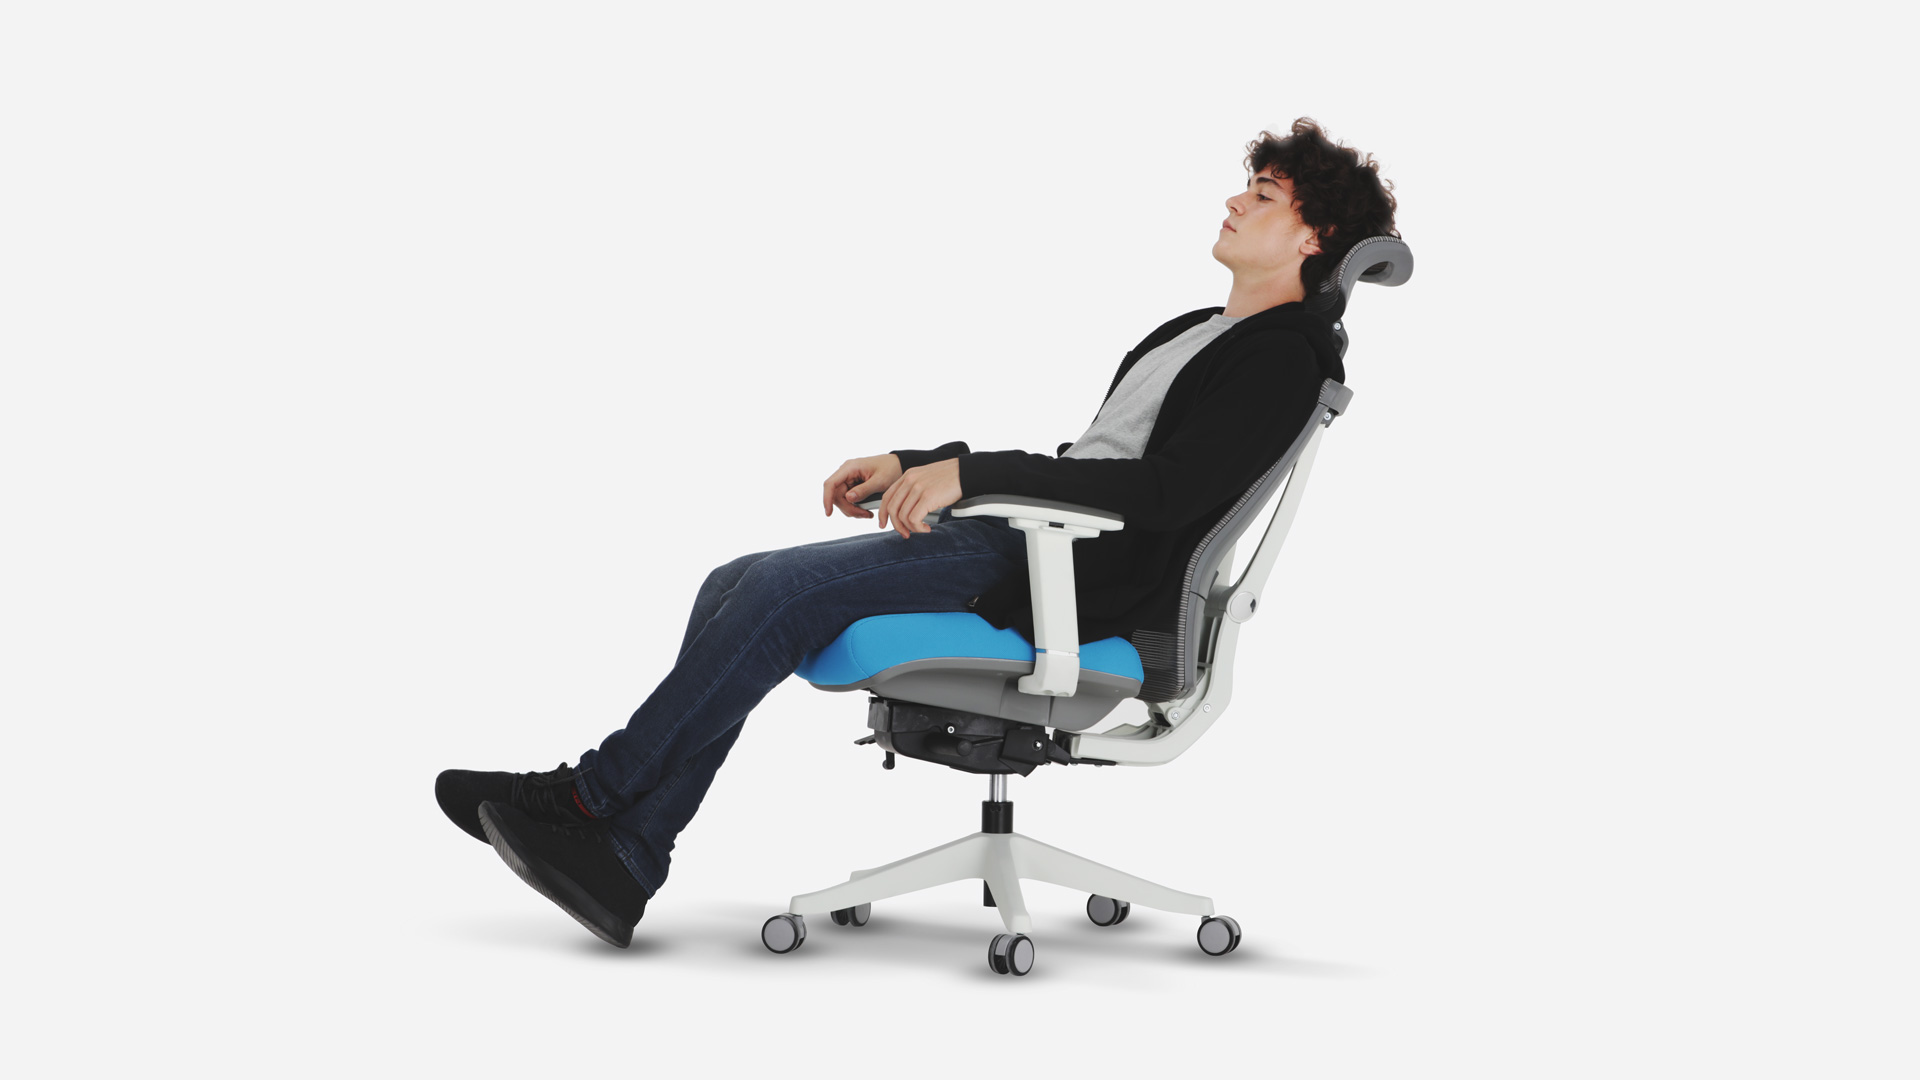 A great ergonomic chair